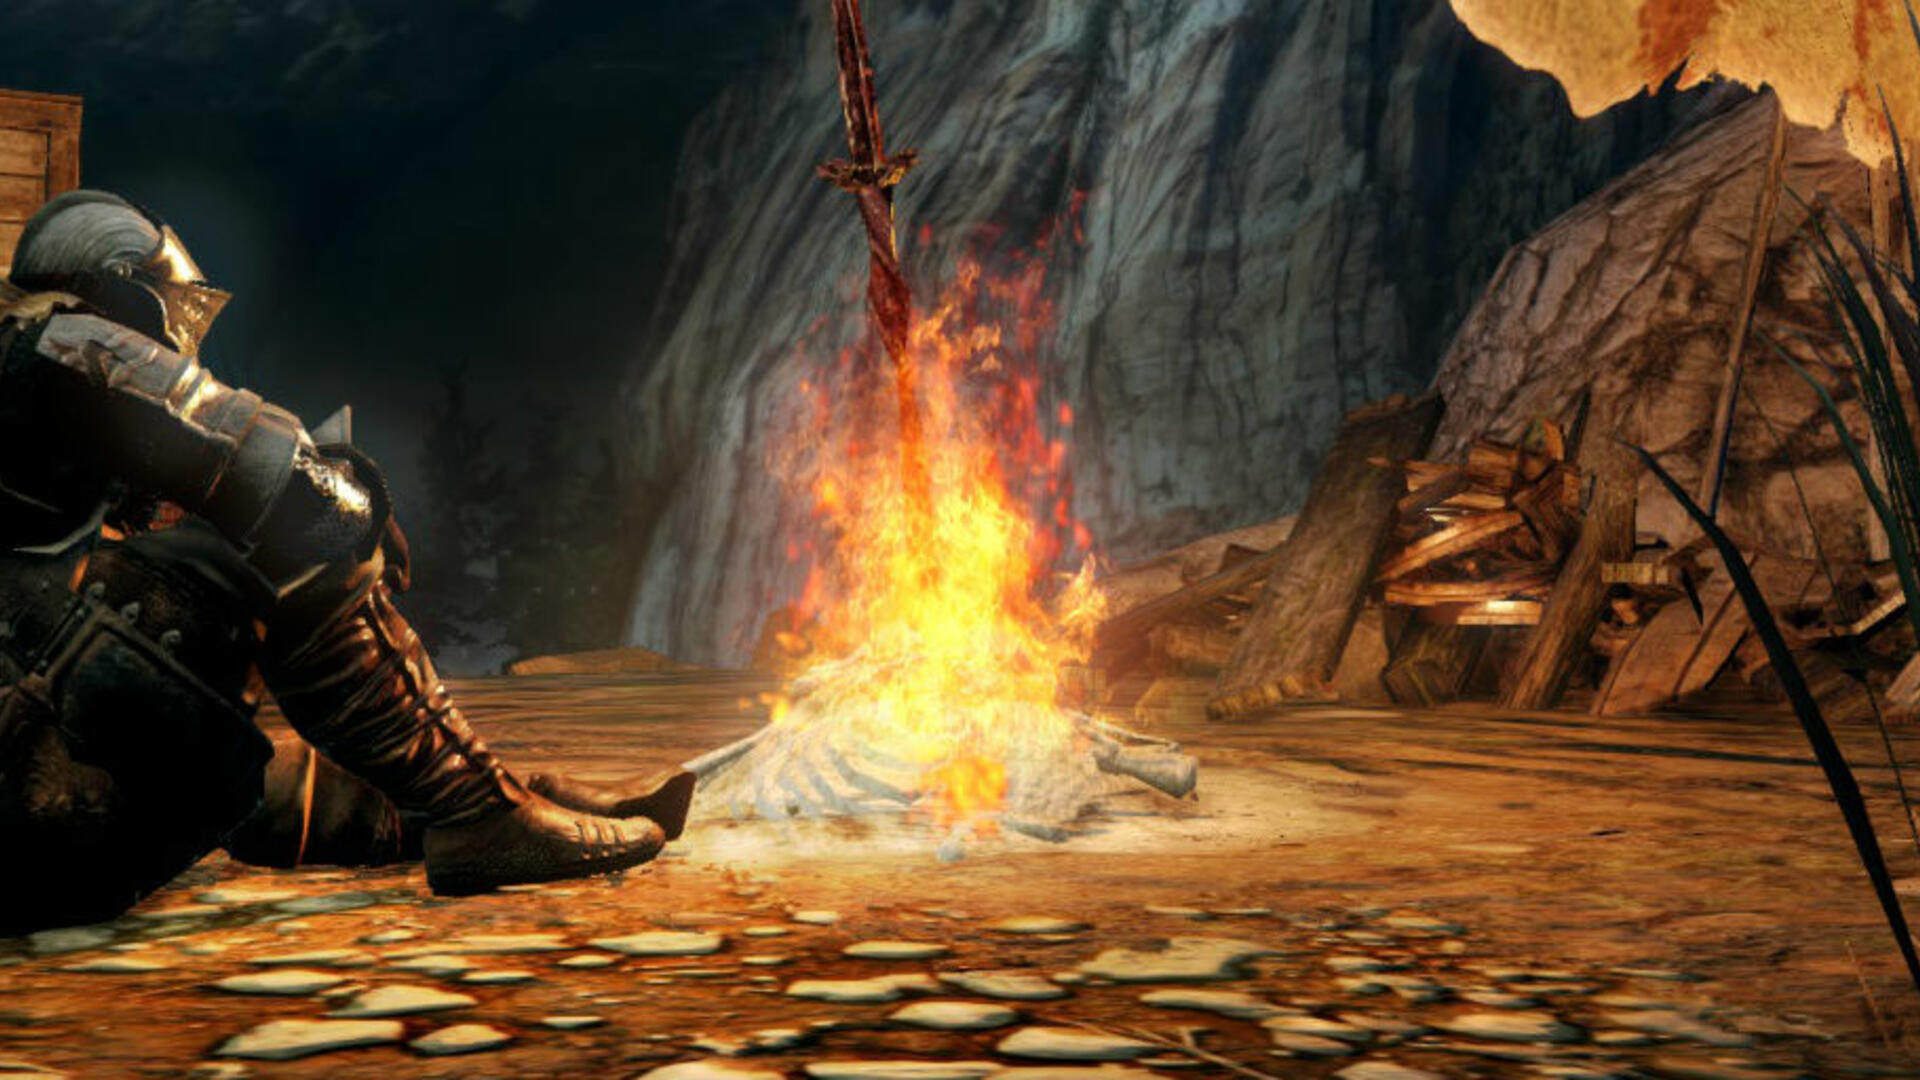 Dark Souls 2 Guide: How to Defeat the Dragonriders and Enter King's Passage